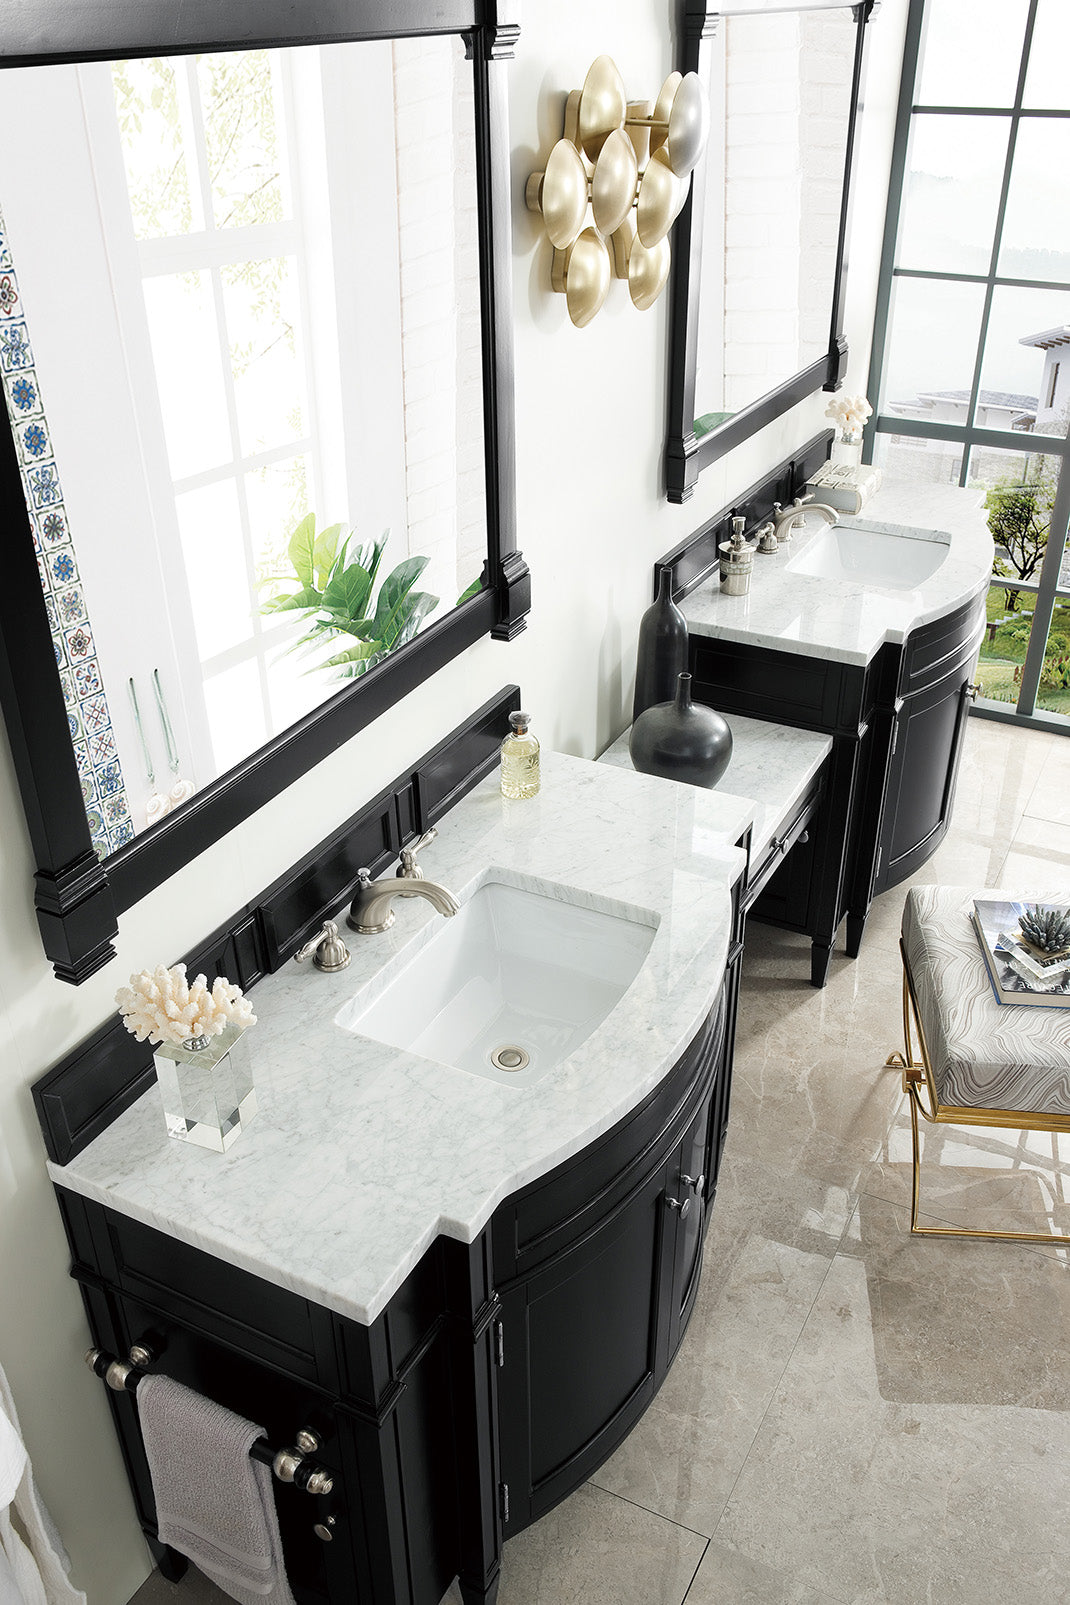 "Brittany 118"" Black Onyx Double Bathroom Vanity"